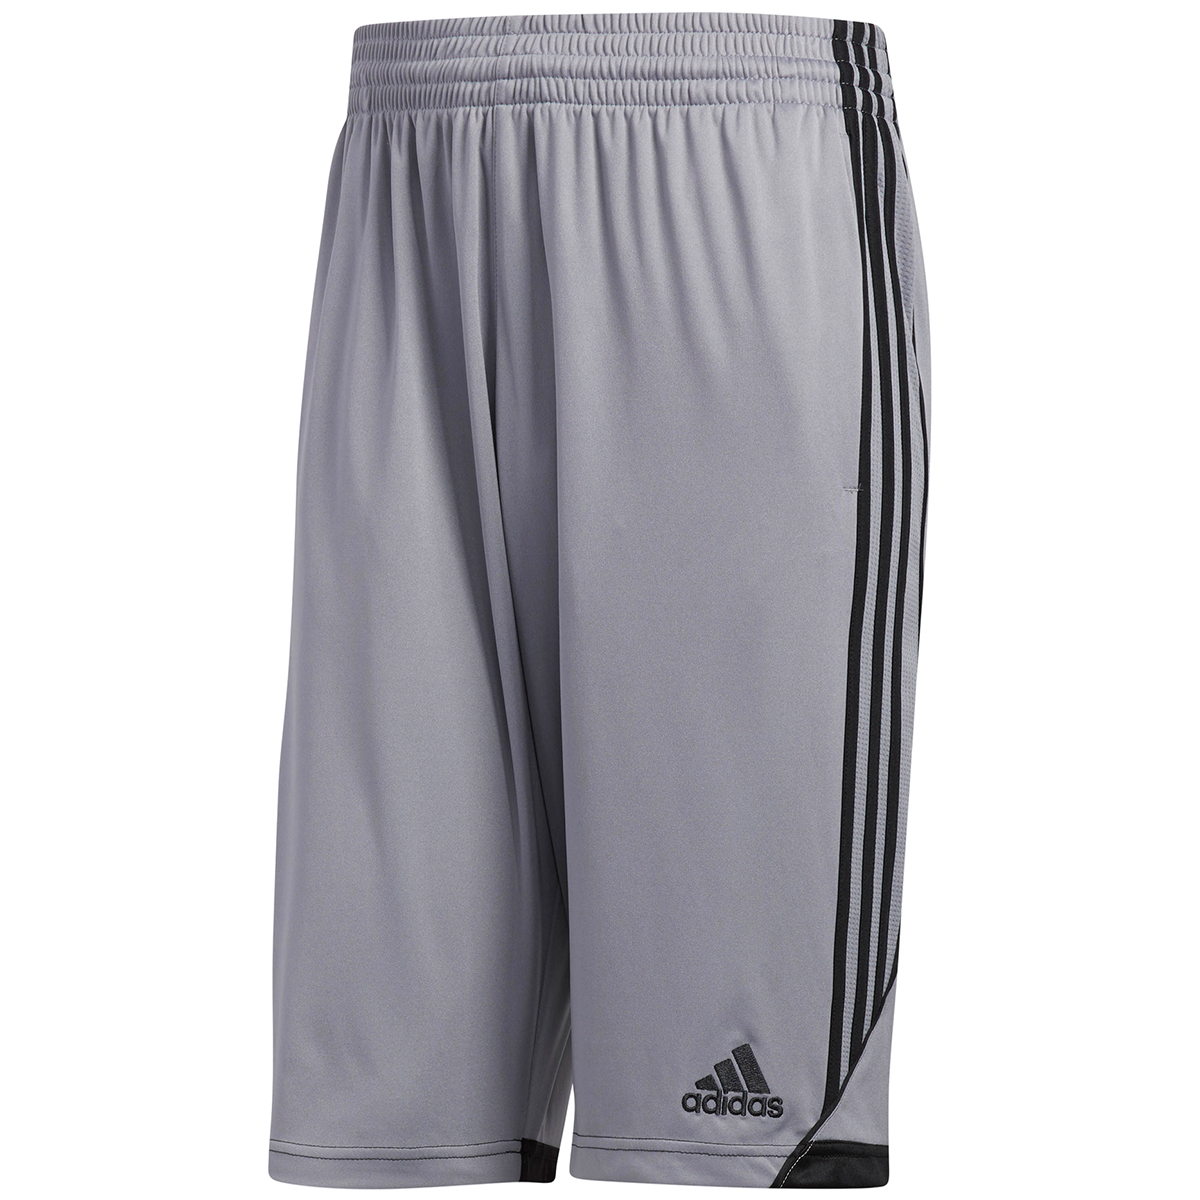 Adidas Men's 3G Speed Basketball Shorts - Black, XXL